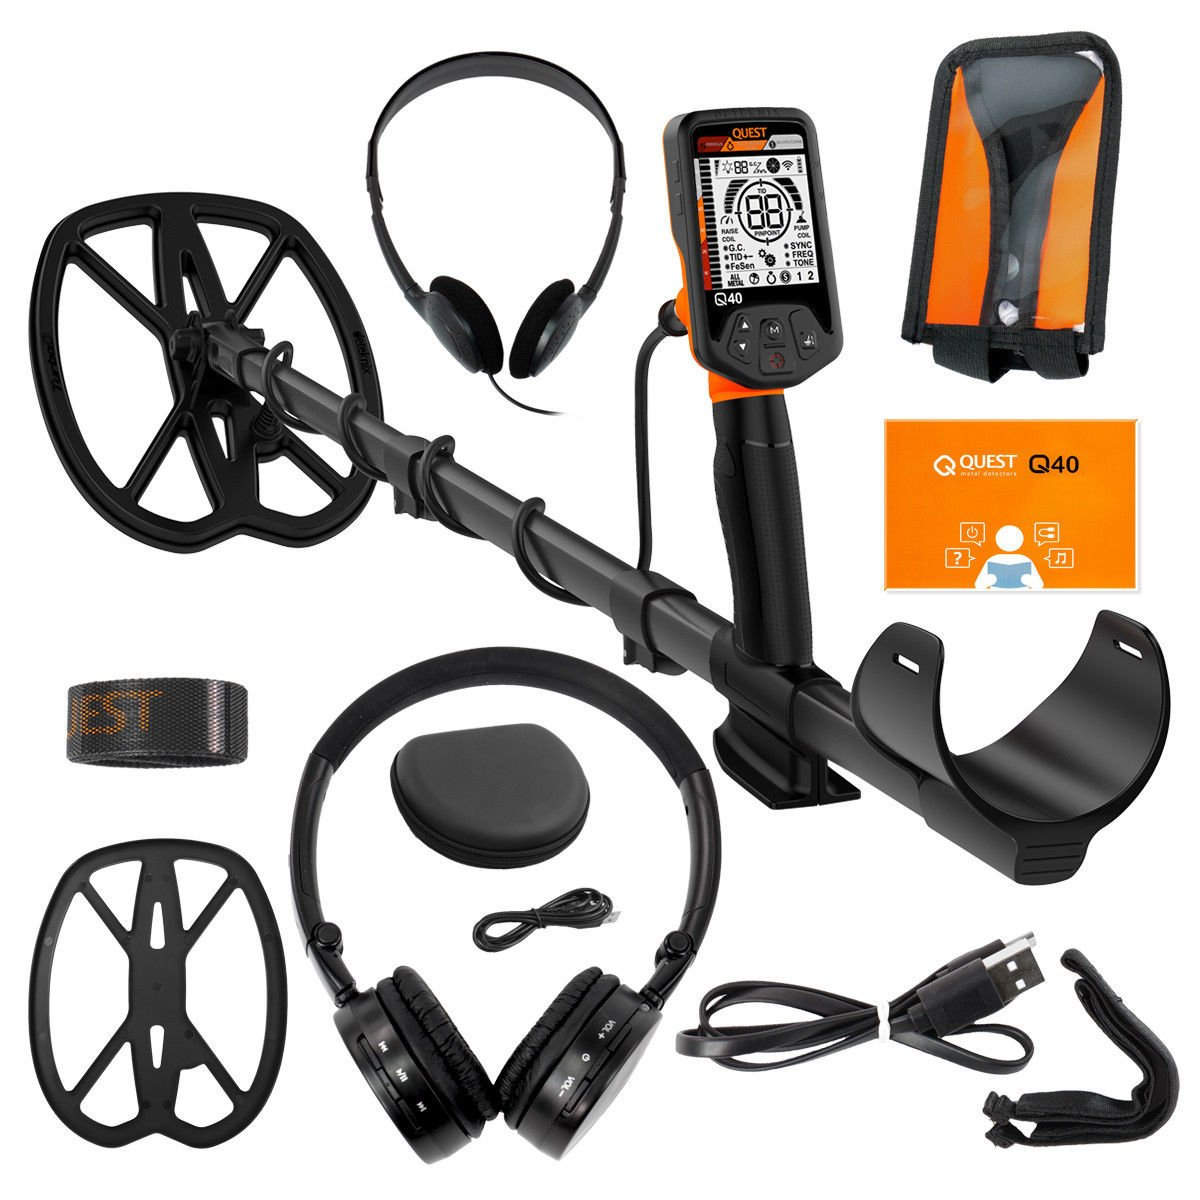 Quest Q40 Metal Detector with 11×9 TurboD Waterproof Search Coil